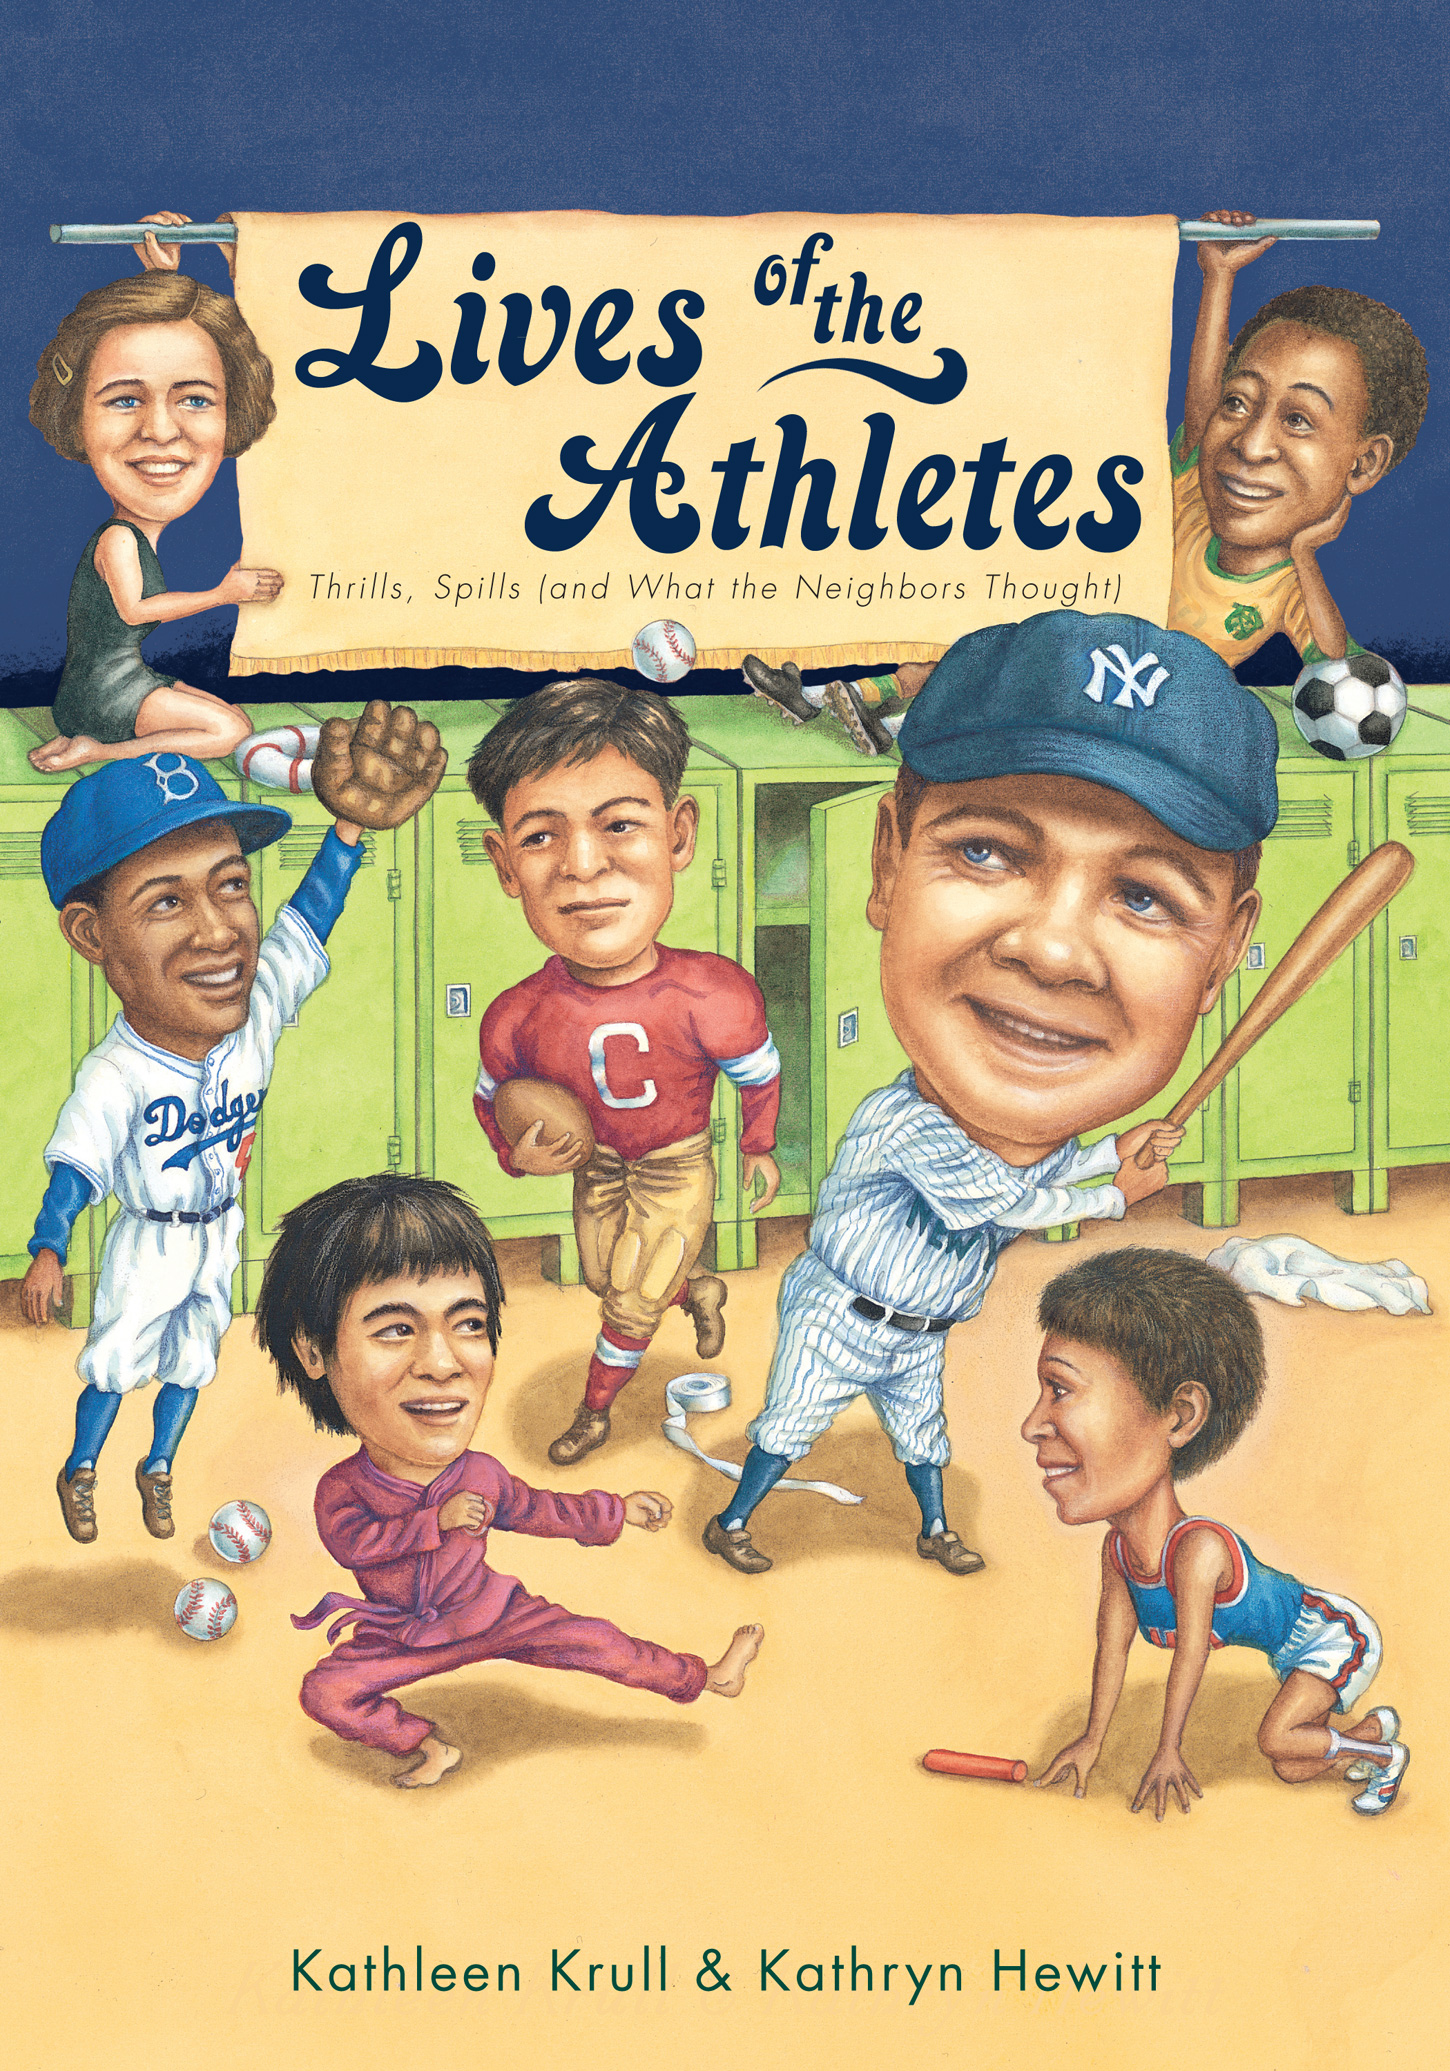 Lives of the Athletes: Thrills, Spills (and What the Neighbors Thought) - Kathleen Krull, illustrated by Kathryn Hewitt   Houghton Mifflin Harcourt 2013What is your favorite athlete's biggest fear? Strangest habit? Craziest quirk? And what did their neighbors have to say about them? Find out all you ever wanted to know about your favorite sports stars in Lives of the Athletes.Biographical information has never been this much fun to read!